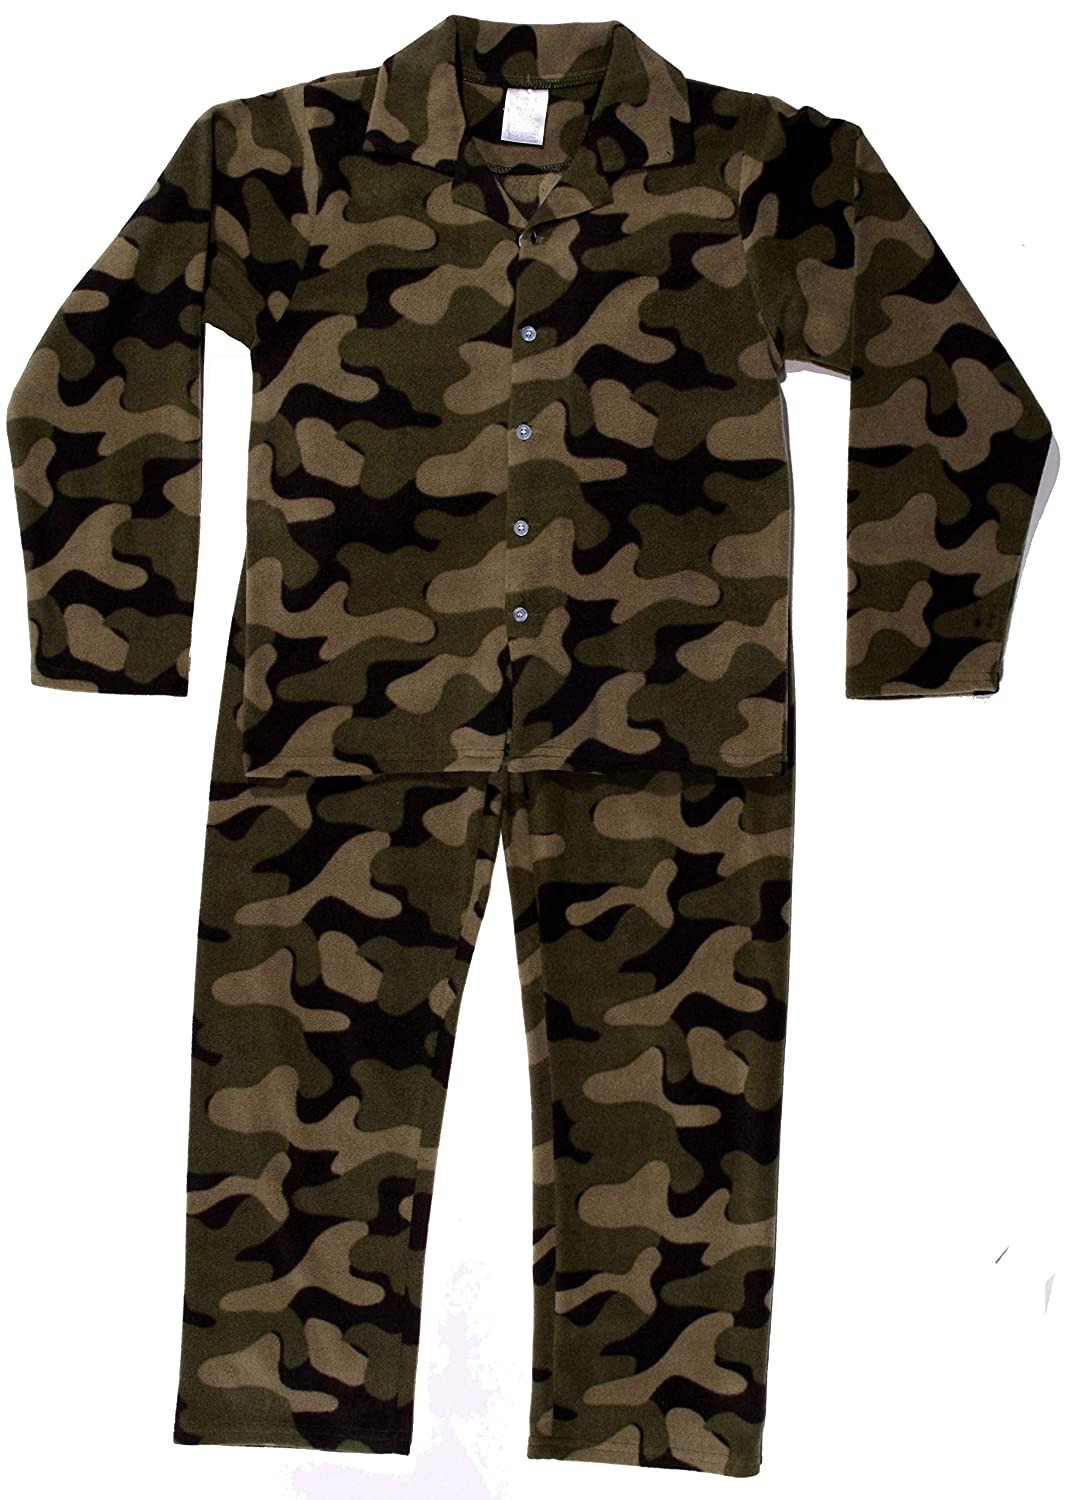 Prince of Sleep Boys' Pajama Set Comfy Warm Microfleece Kids Pjs